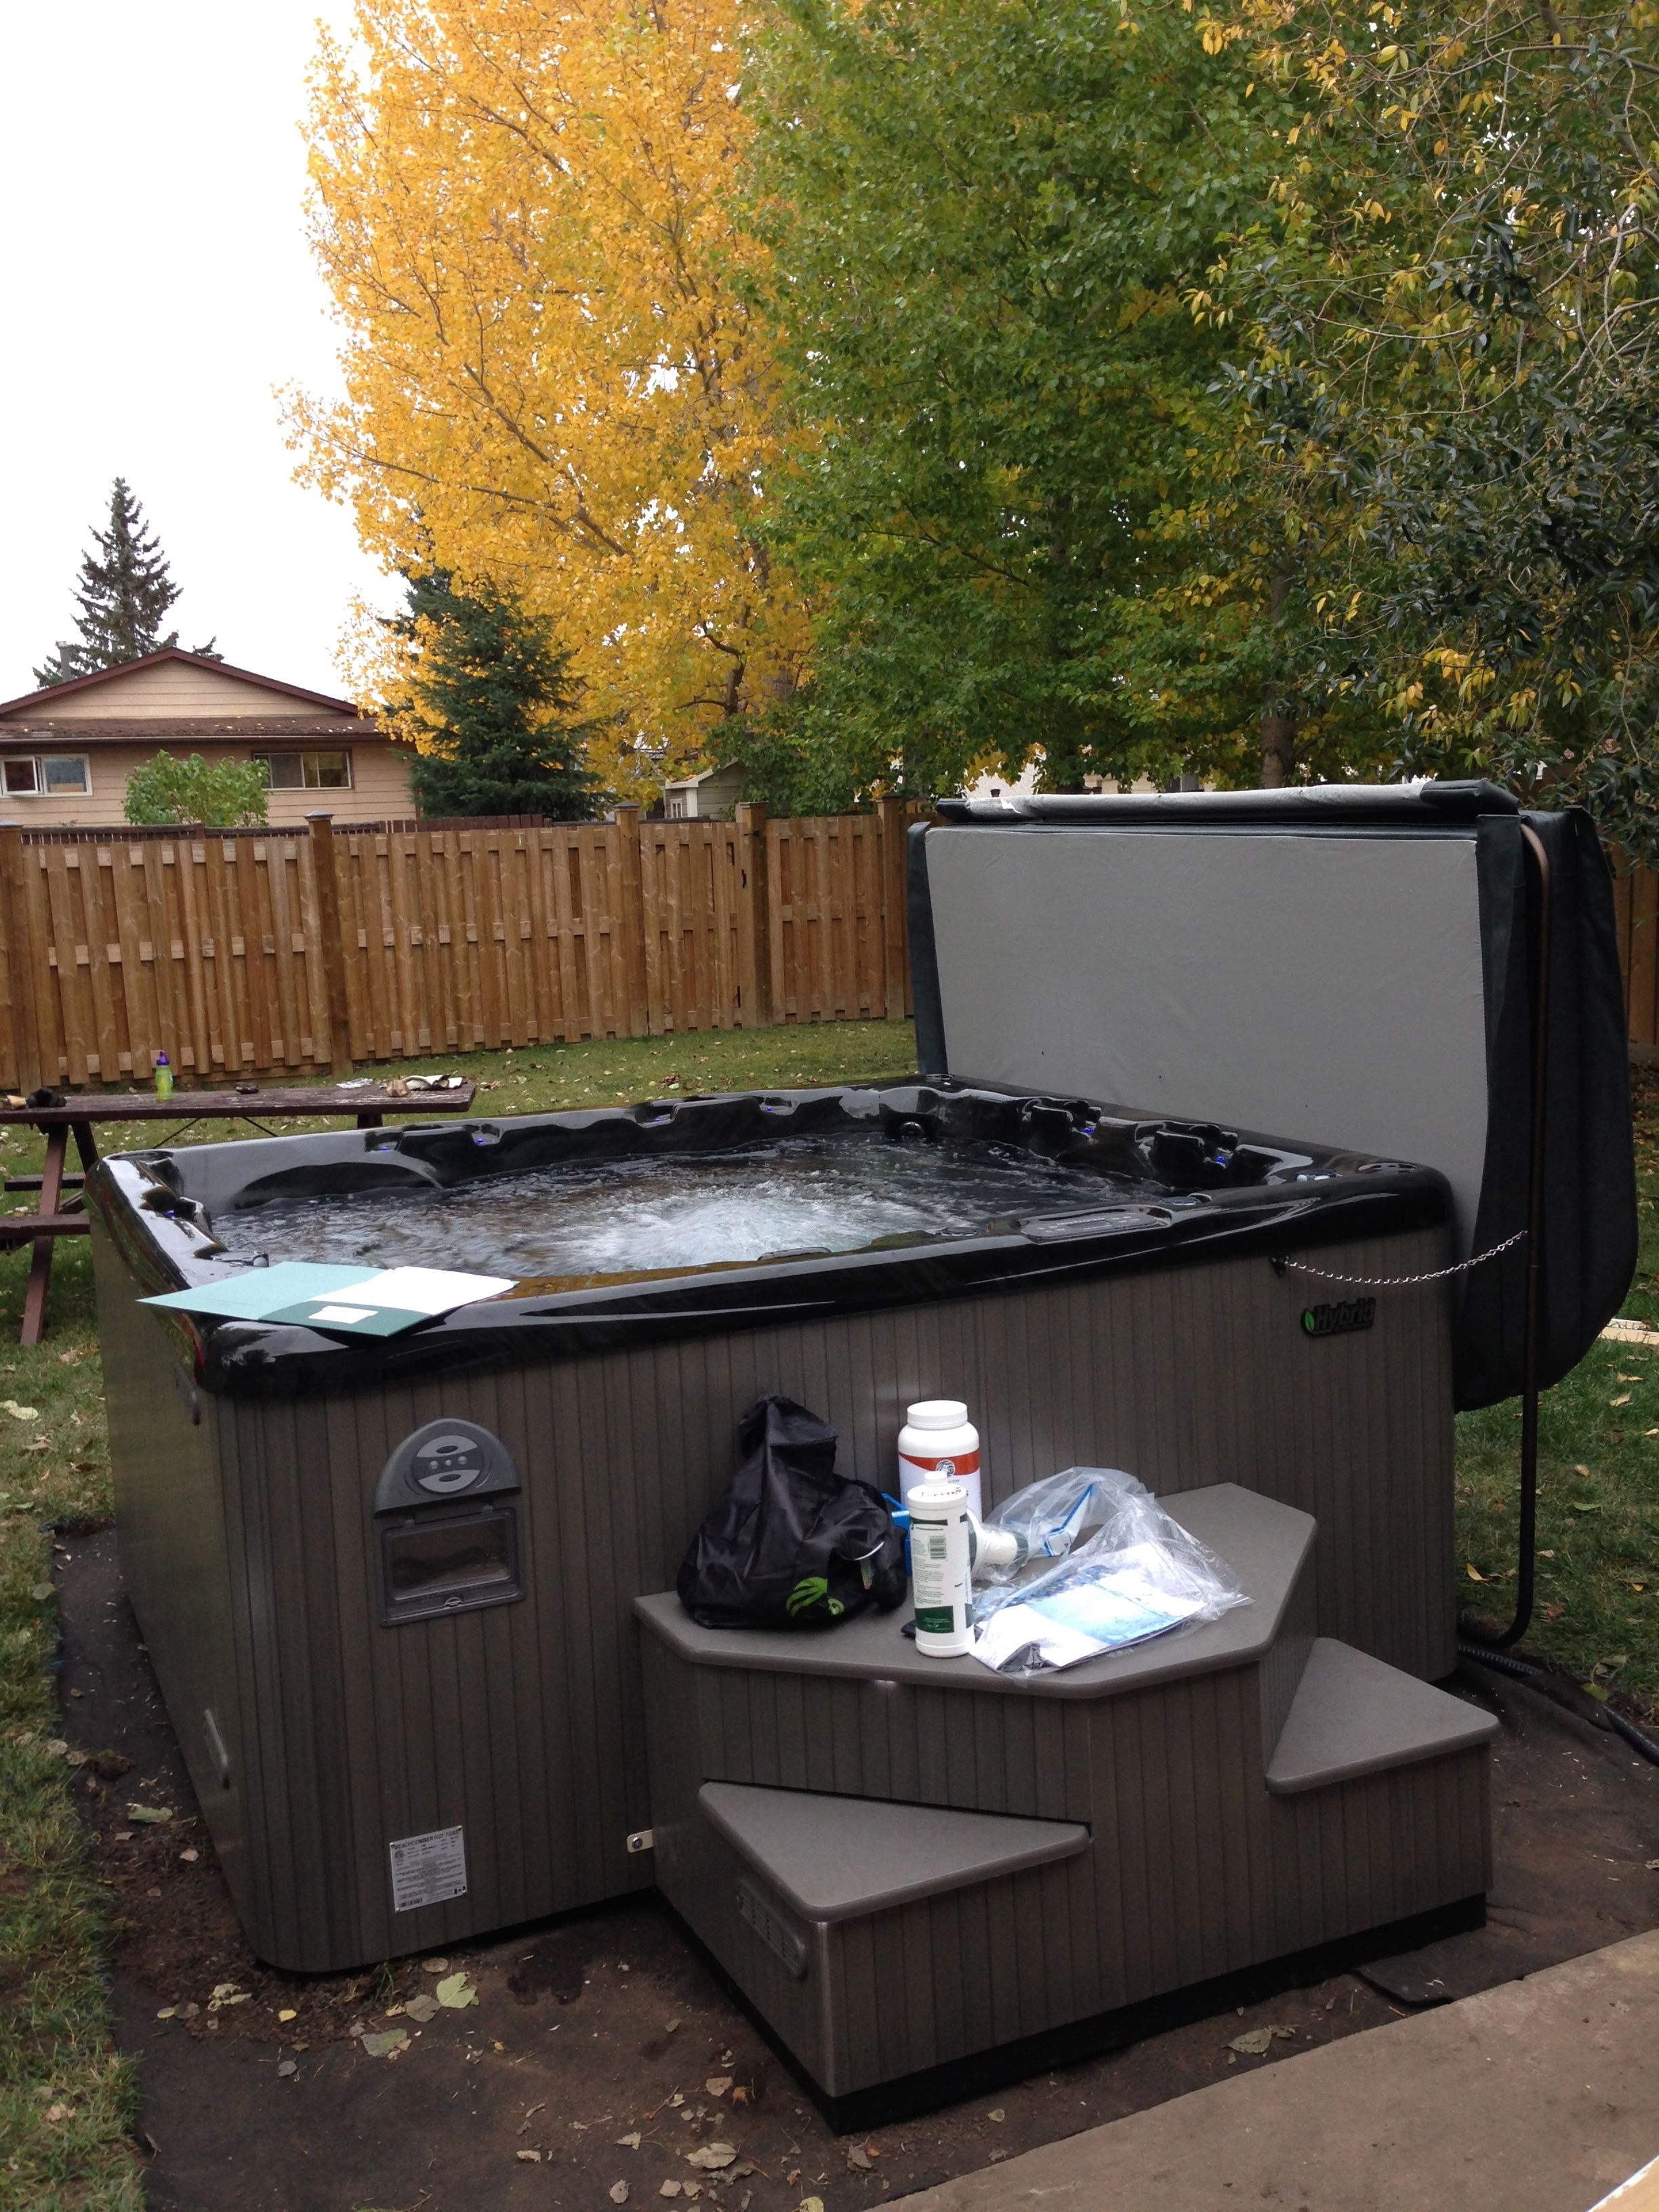 hight resolution of beachcomber hot tub model 720 install